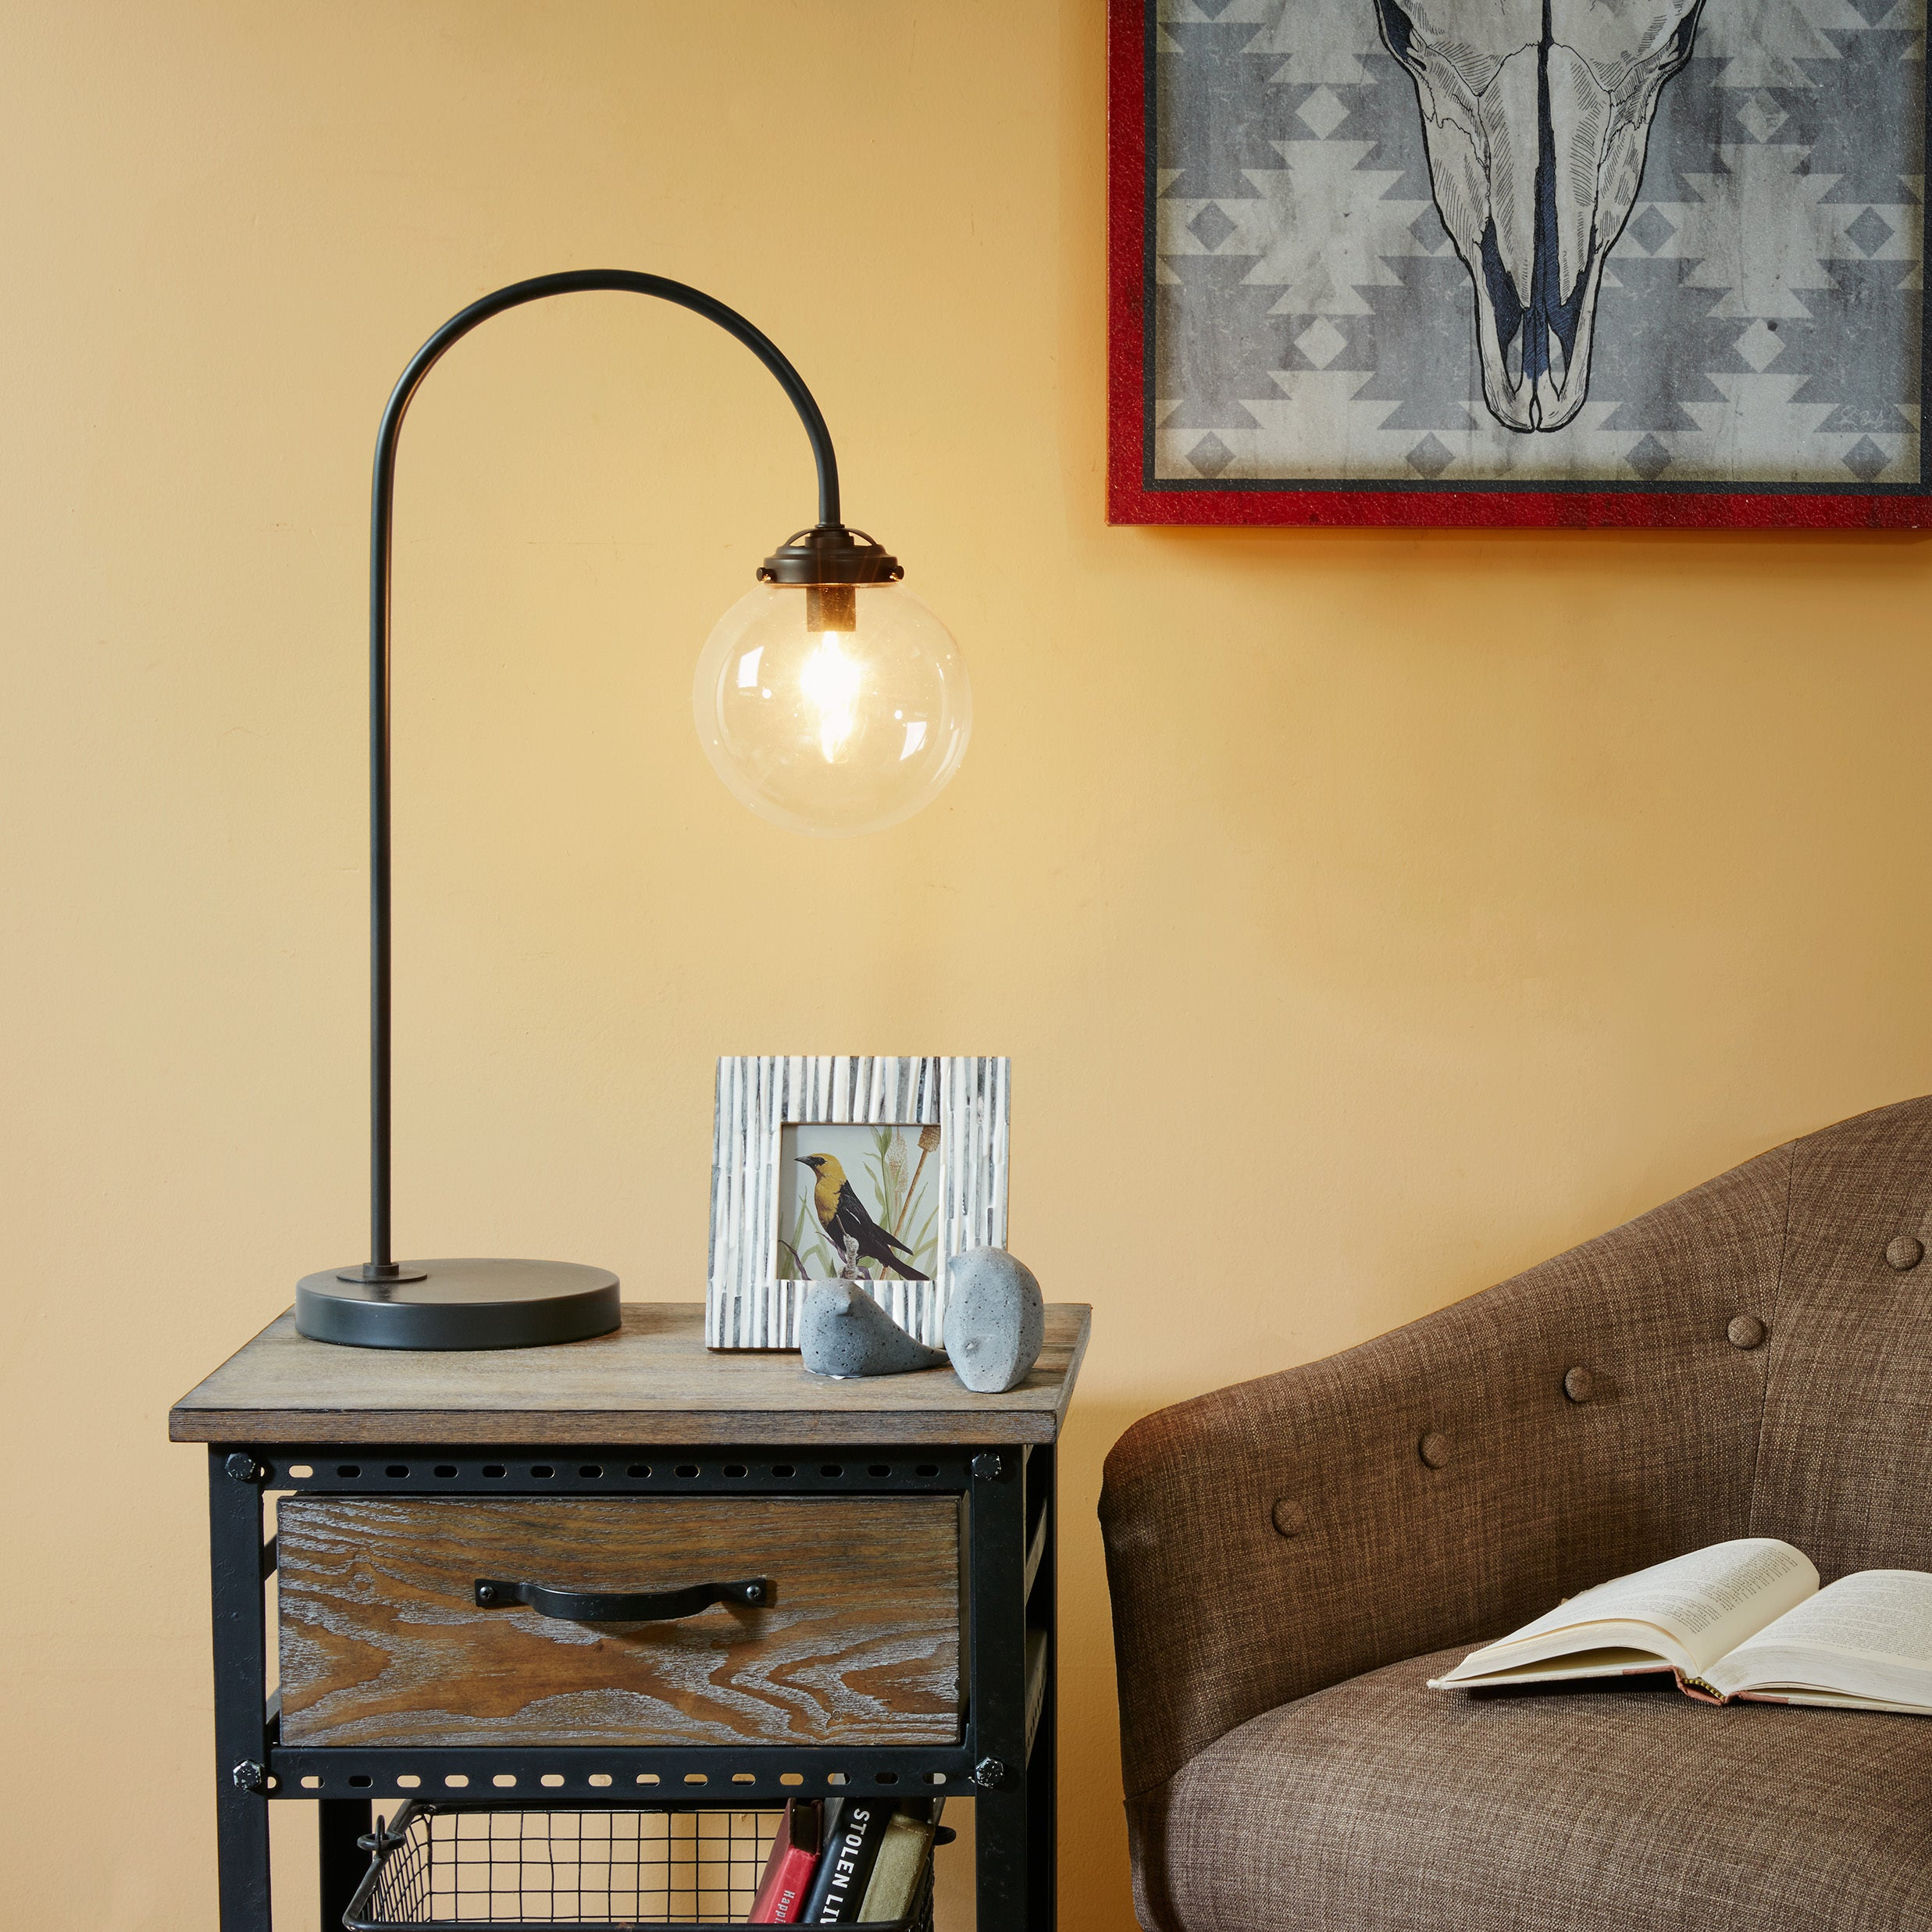 Buy Industrial Table Lamps Online at Overstock.com | Our Best ...